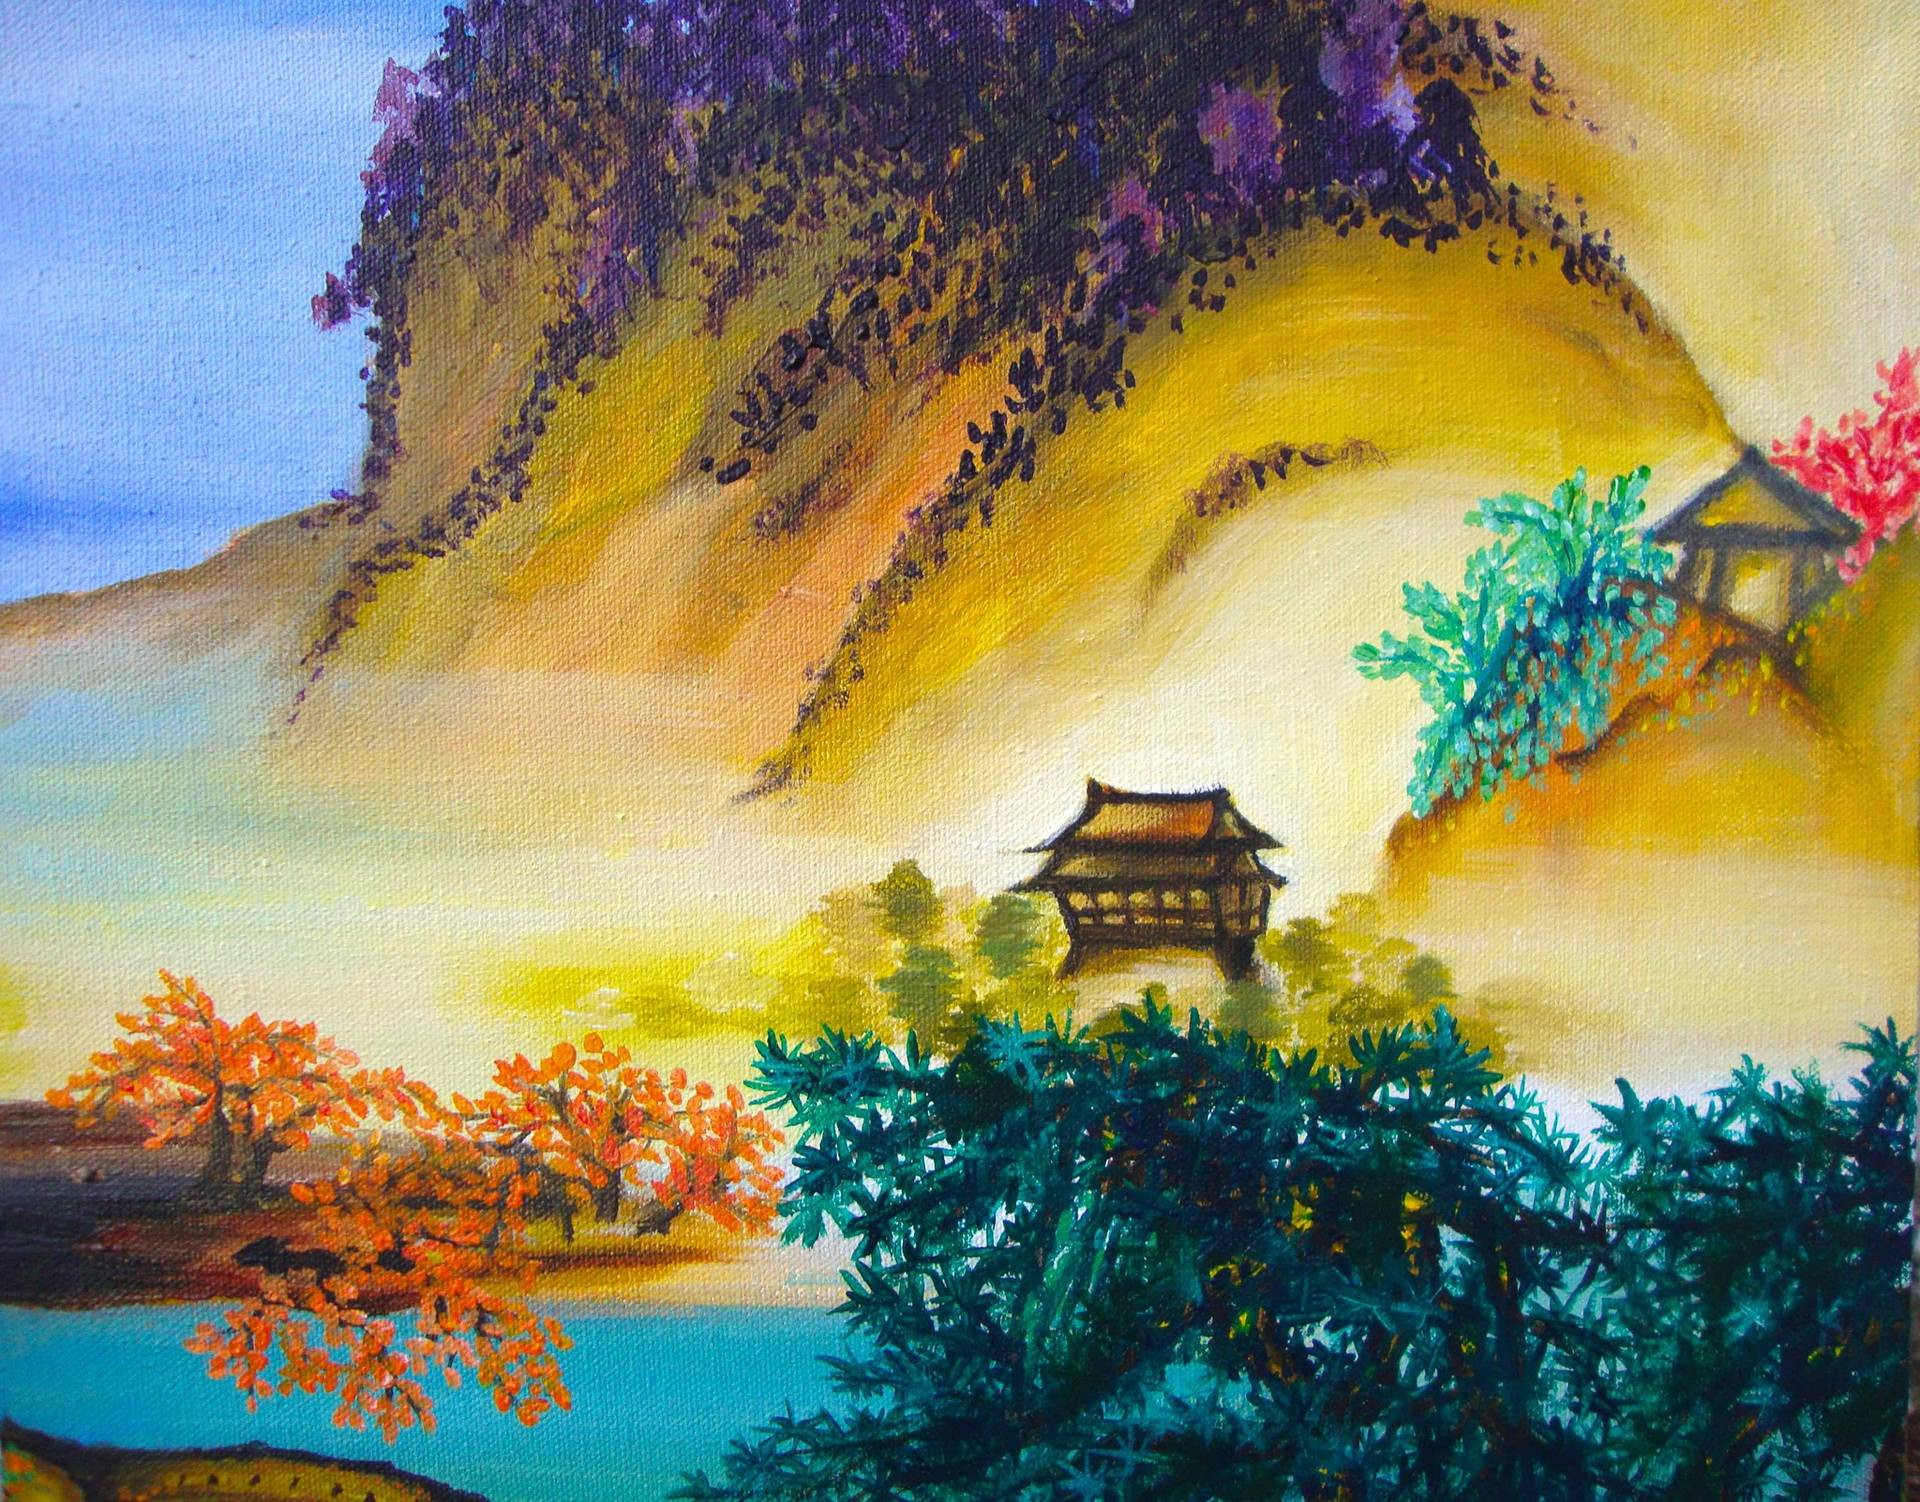 Chinese Landscape Paintings  Saatchi Art Colourful Ancient Chinese Landscape Painting